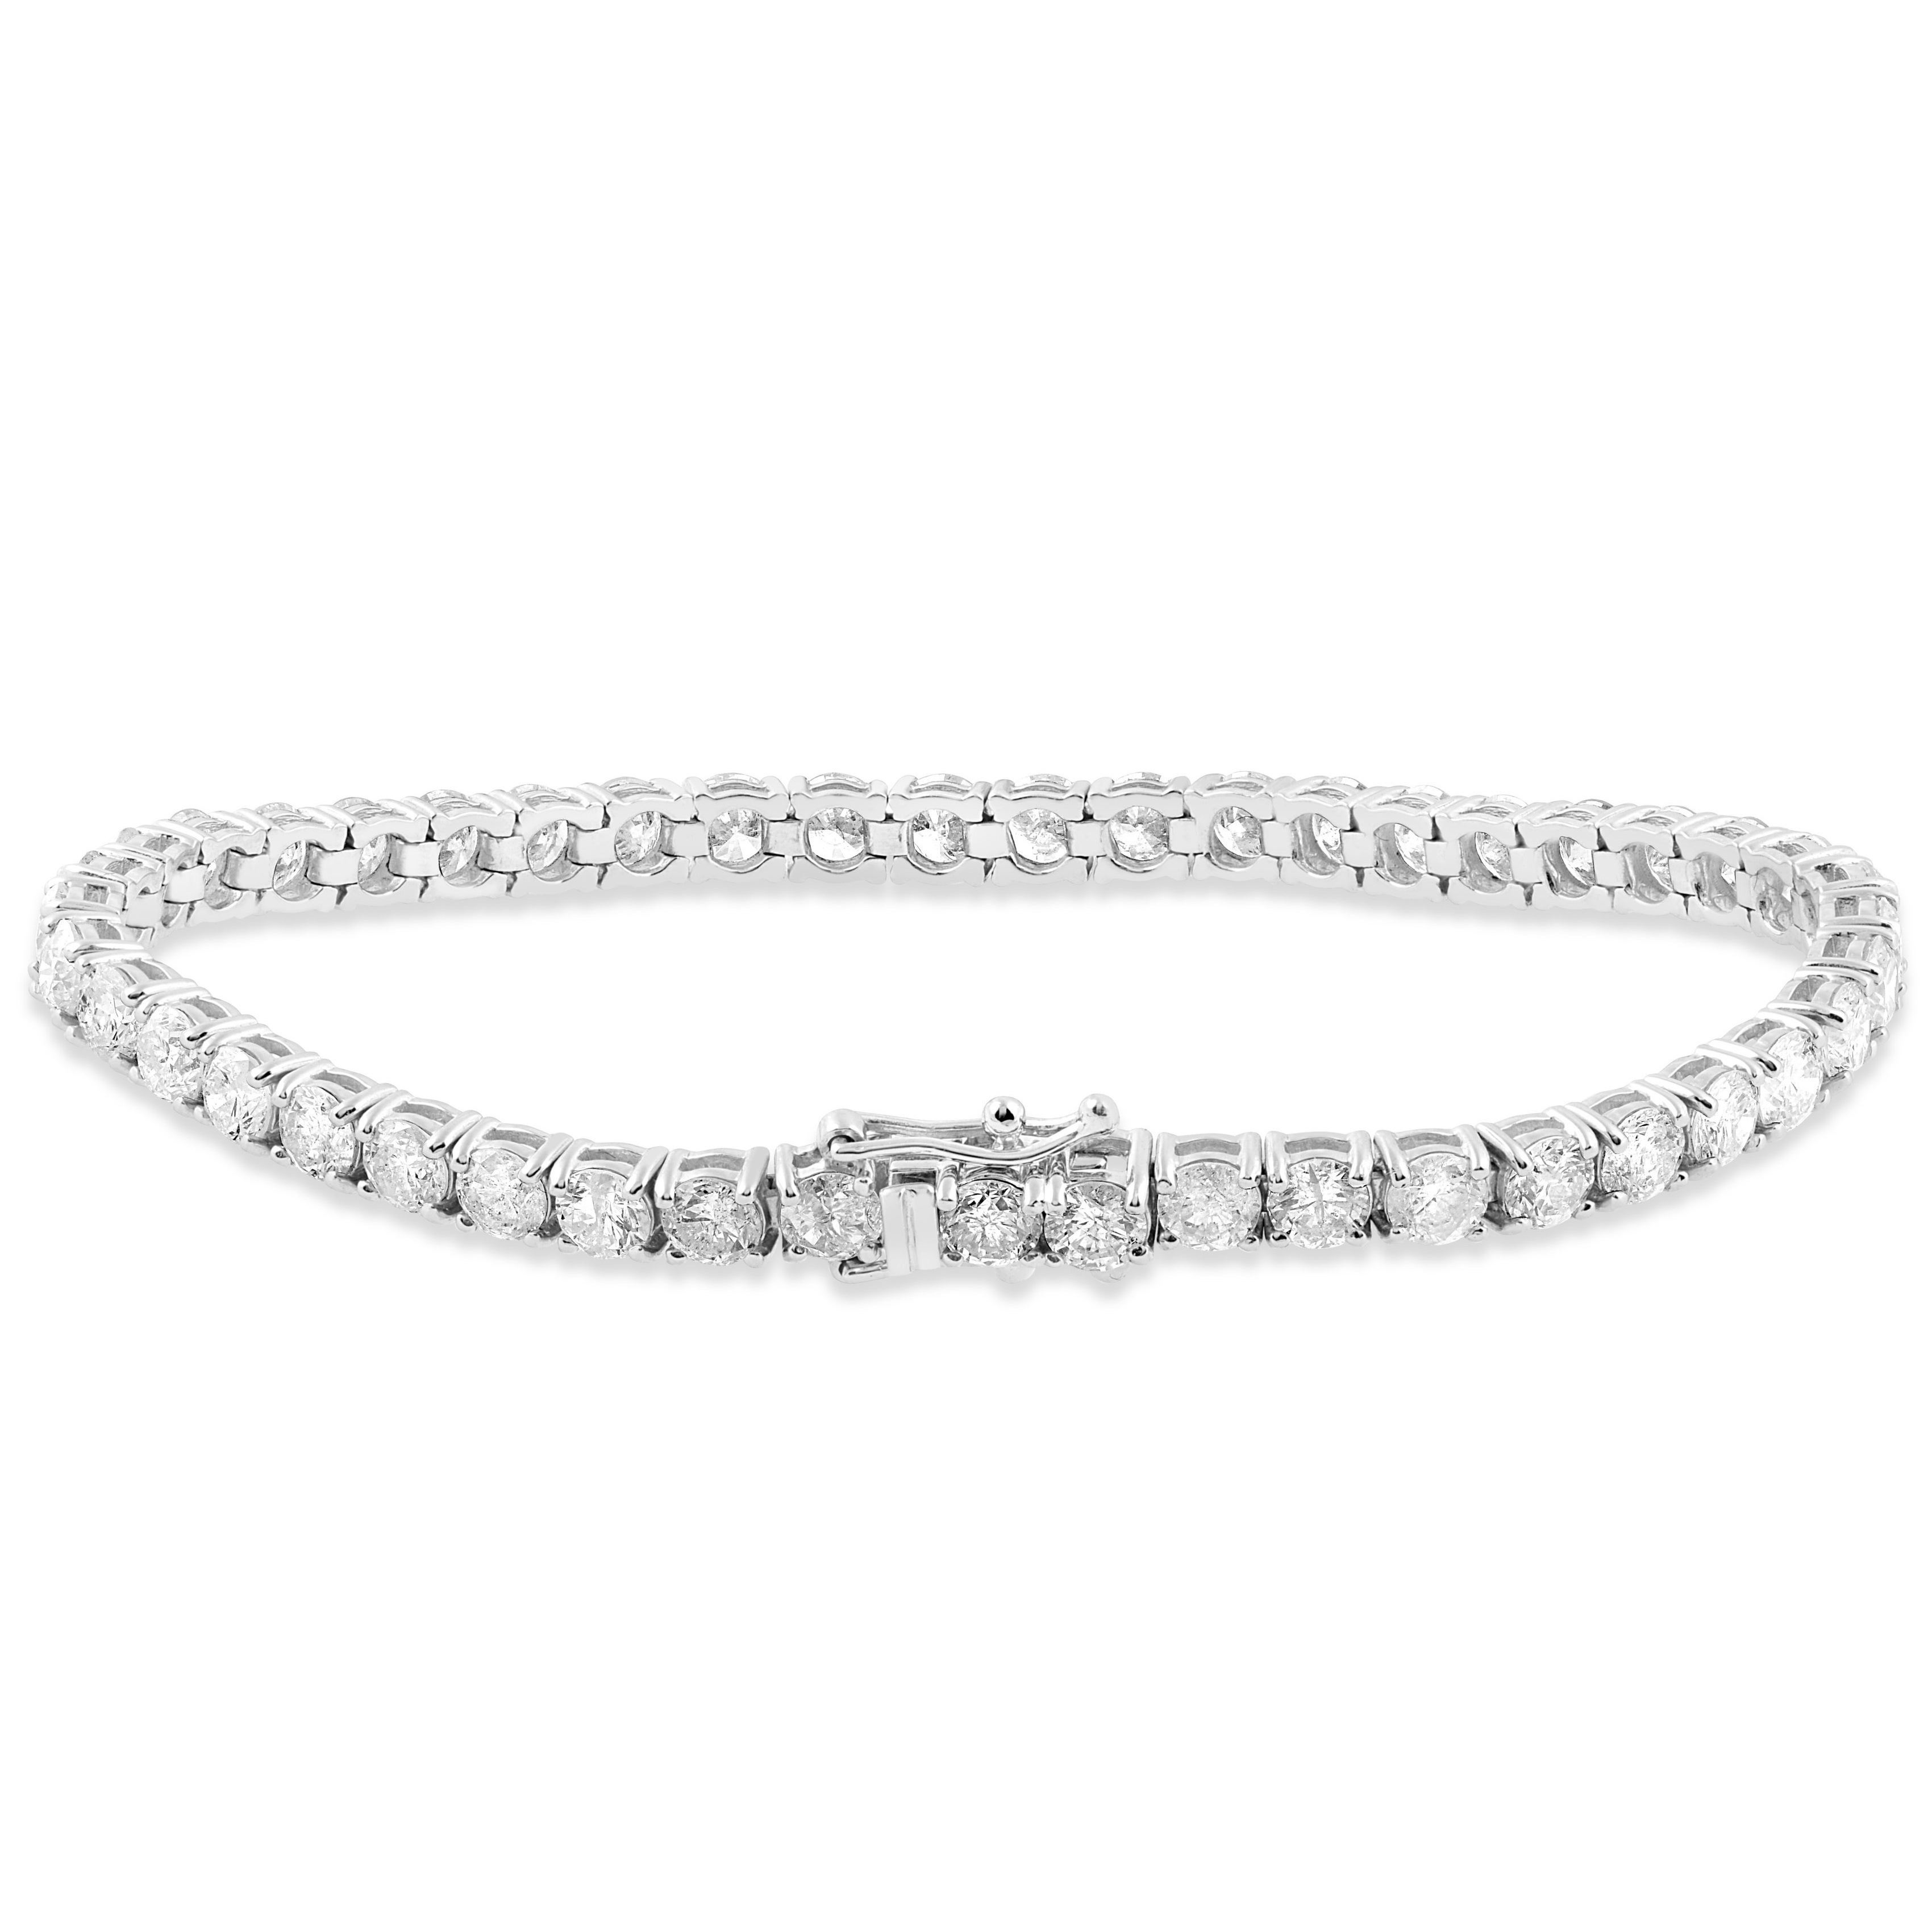 18k White Gold 9 1 2 Ct Tdw Diamond Tennis Bracelet